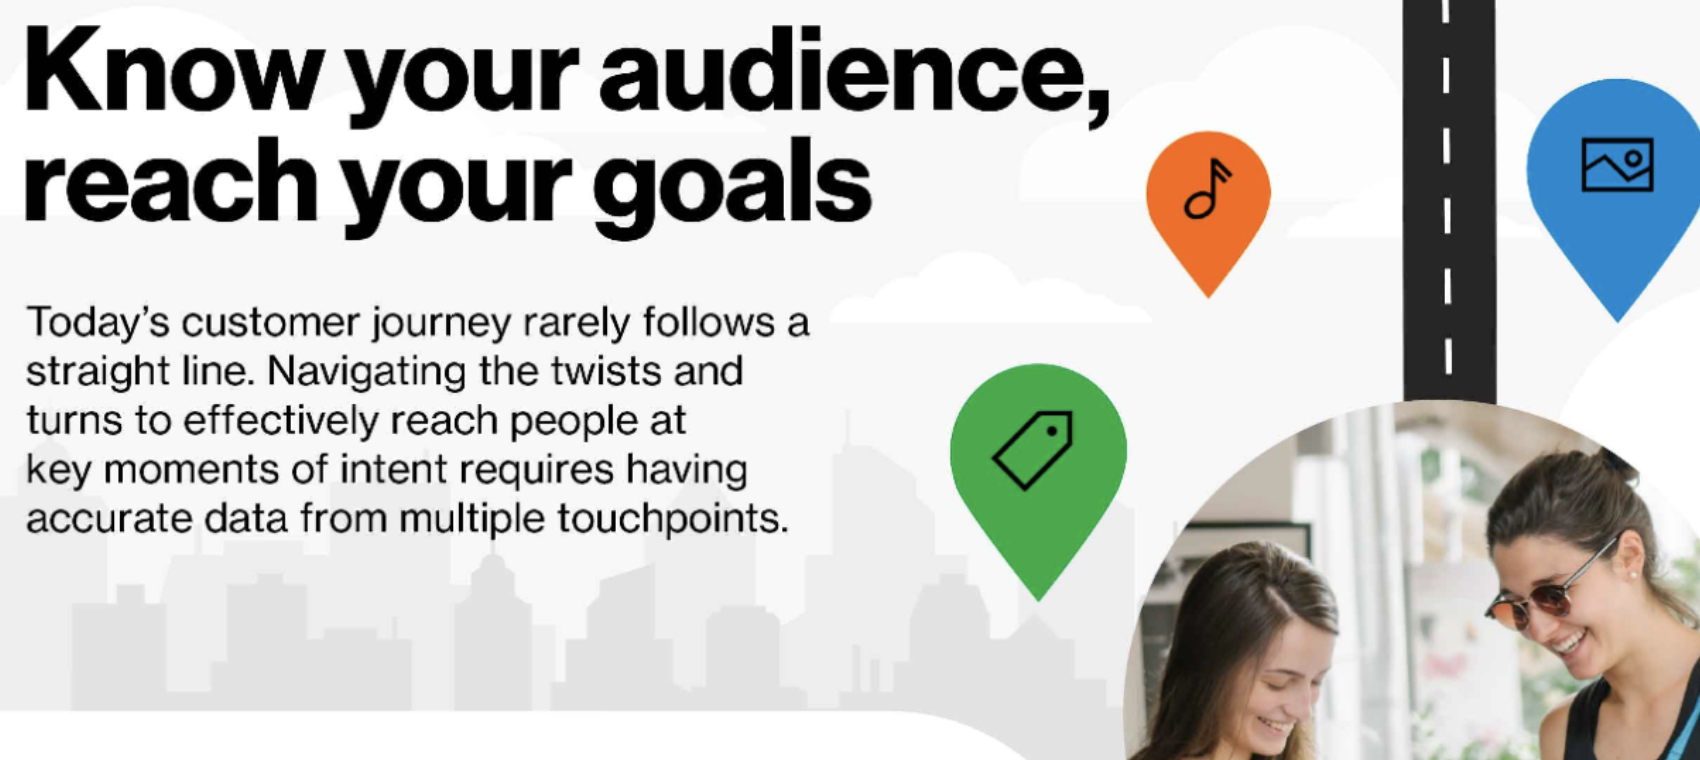 know your audience reach your goals